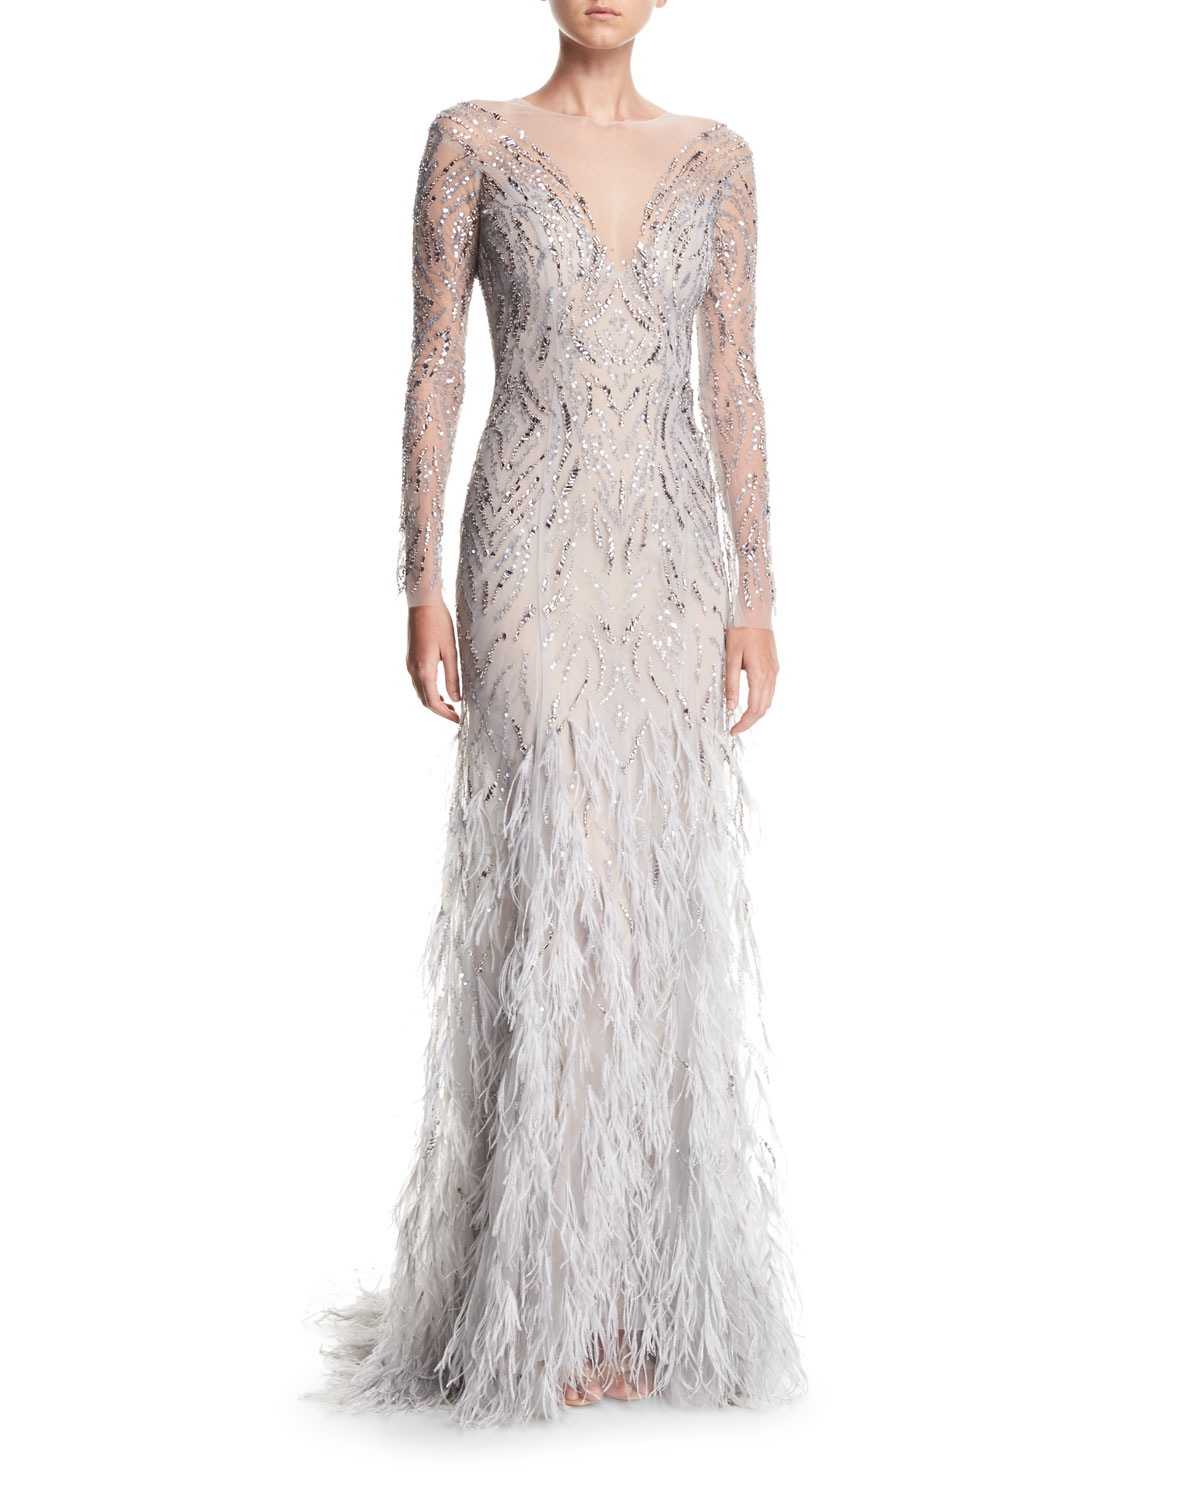 Monique Lhuillier Embellished Long Sleeve Illusion Evening Gown With